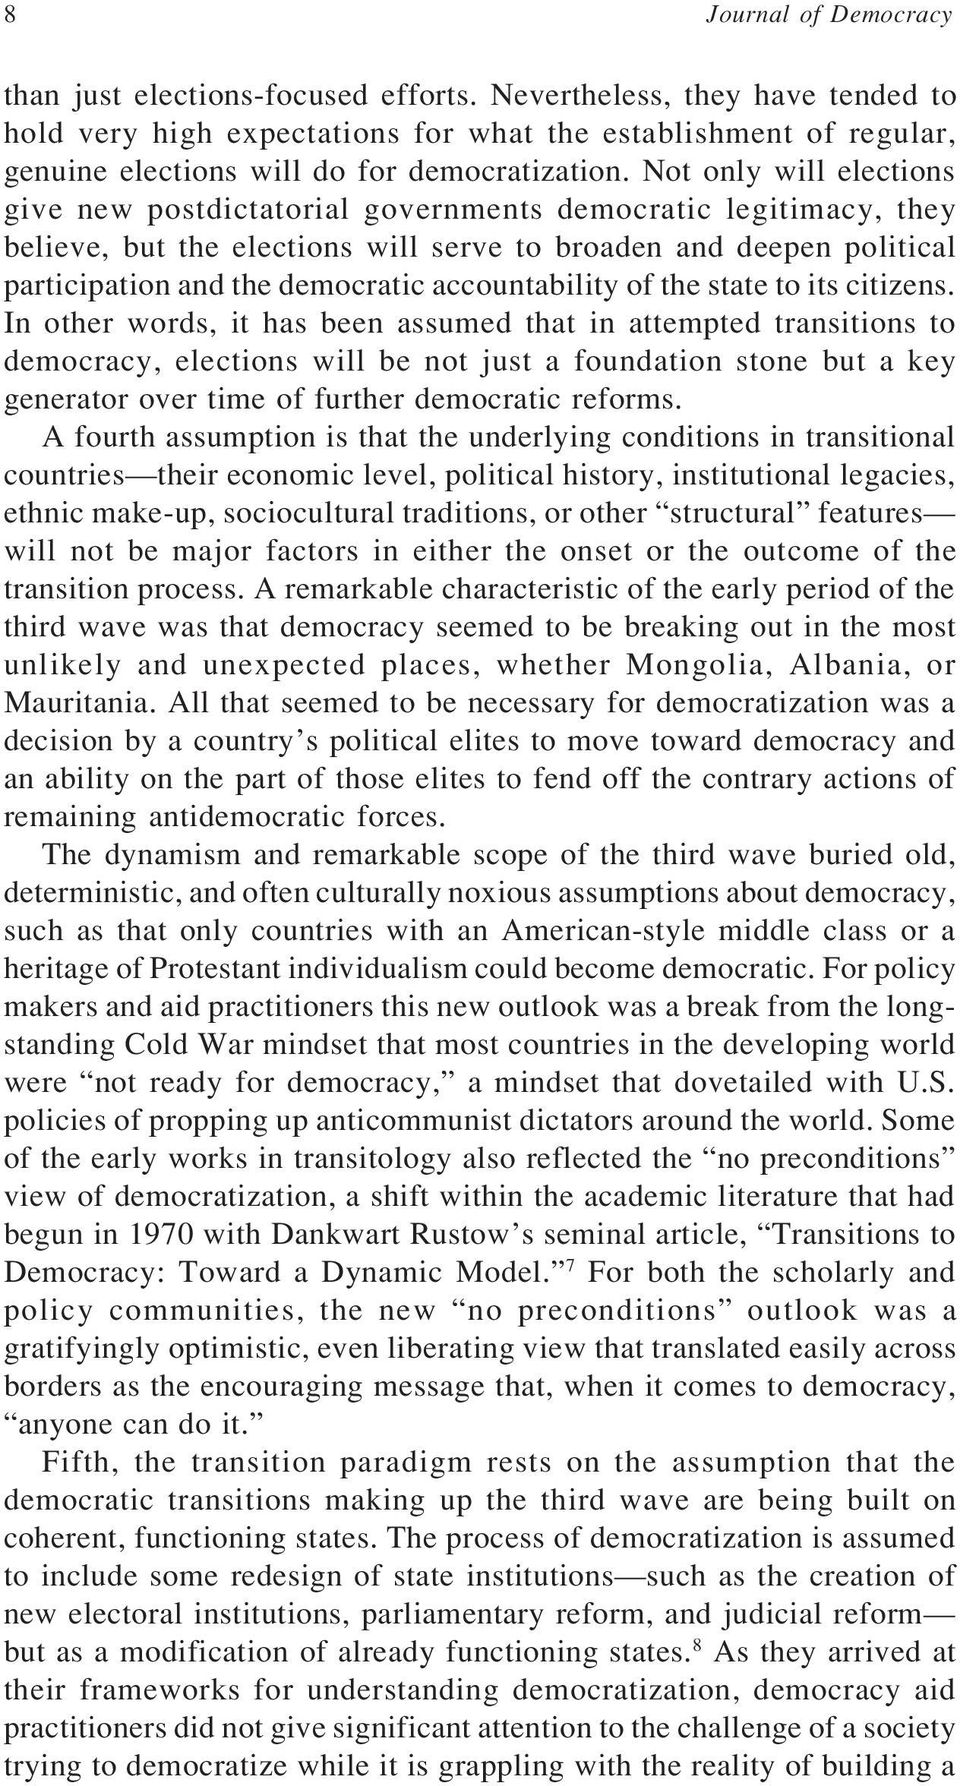 Not only will elections give new postdictatorial governments democratic legitimacy, they believe, but the elections will serve to broaden and deepen political participation and the democratic